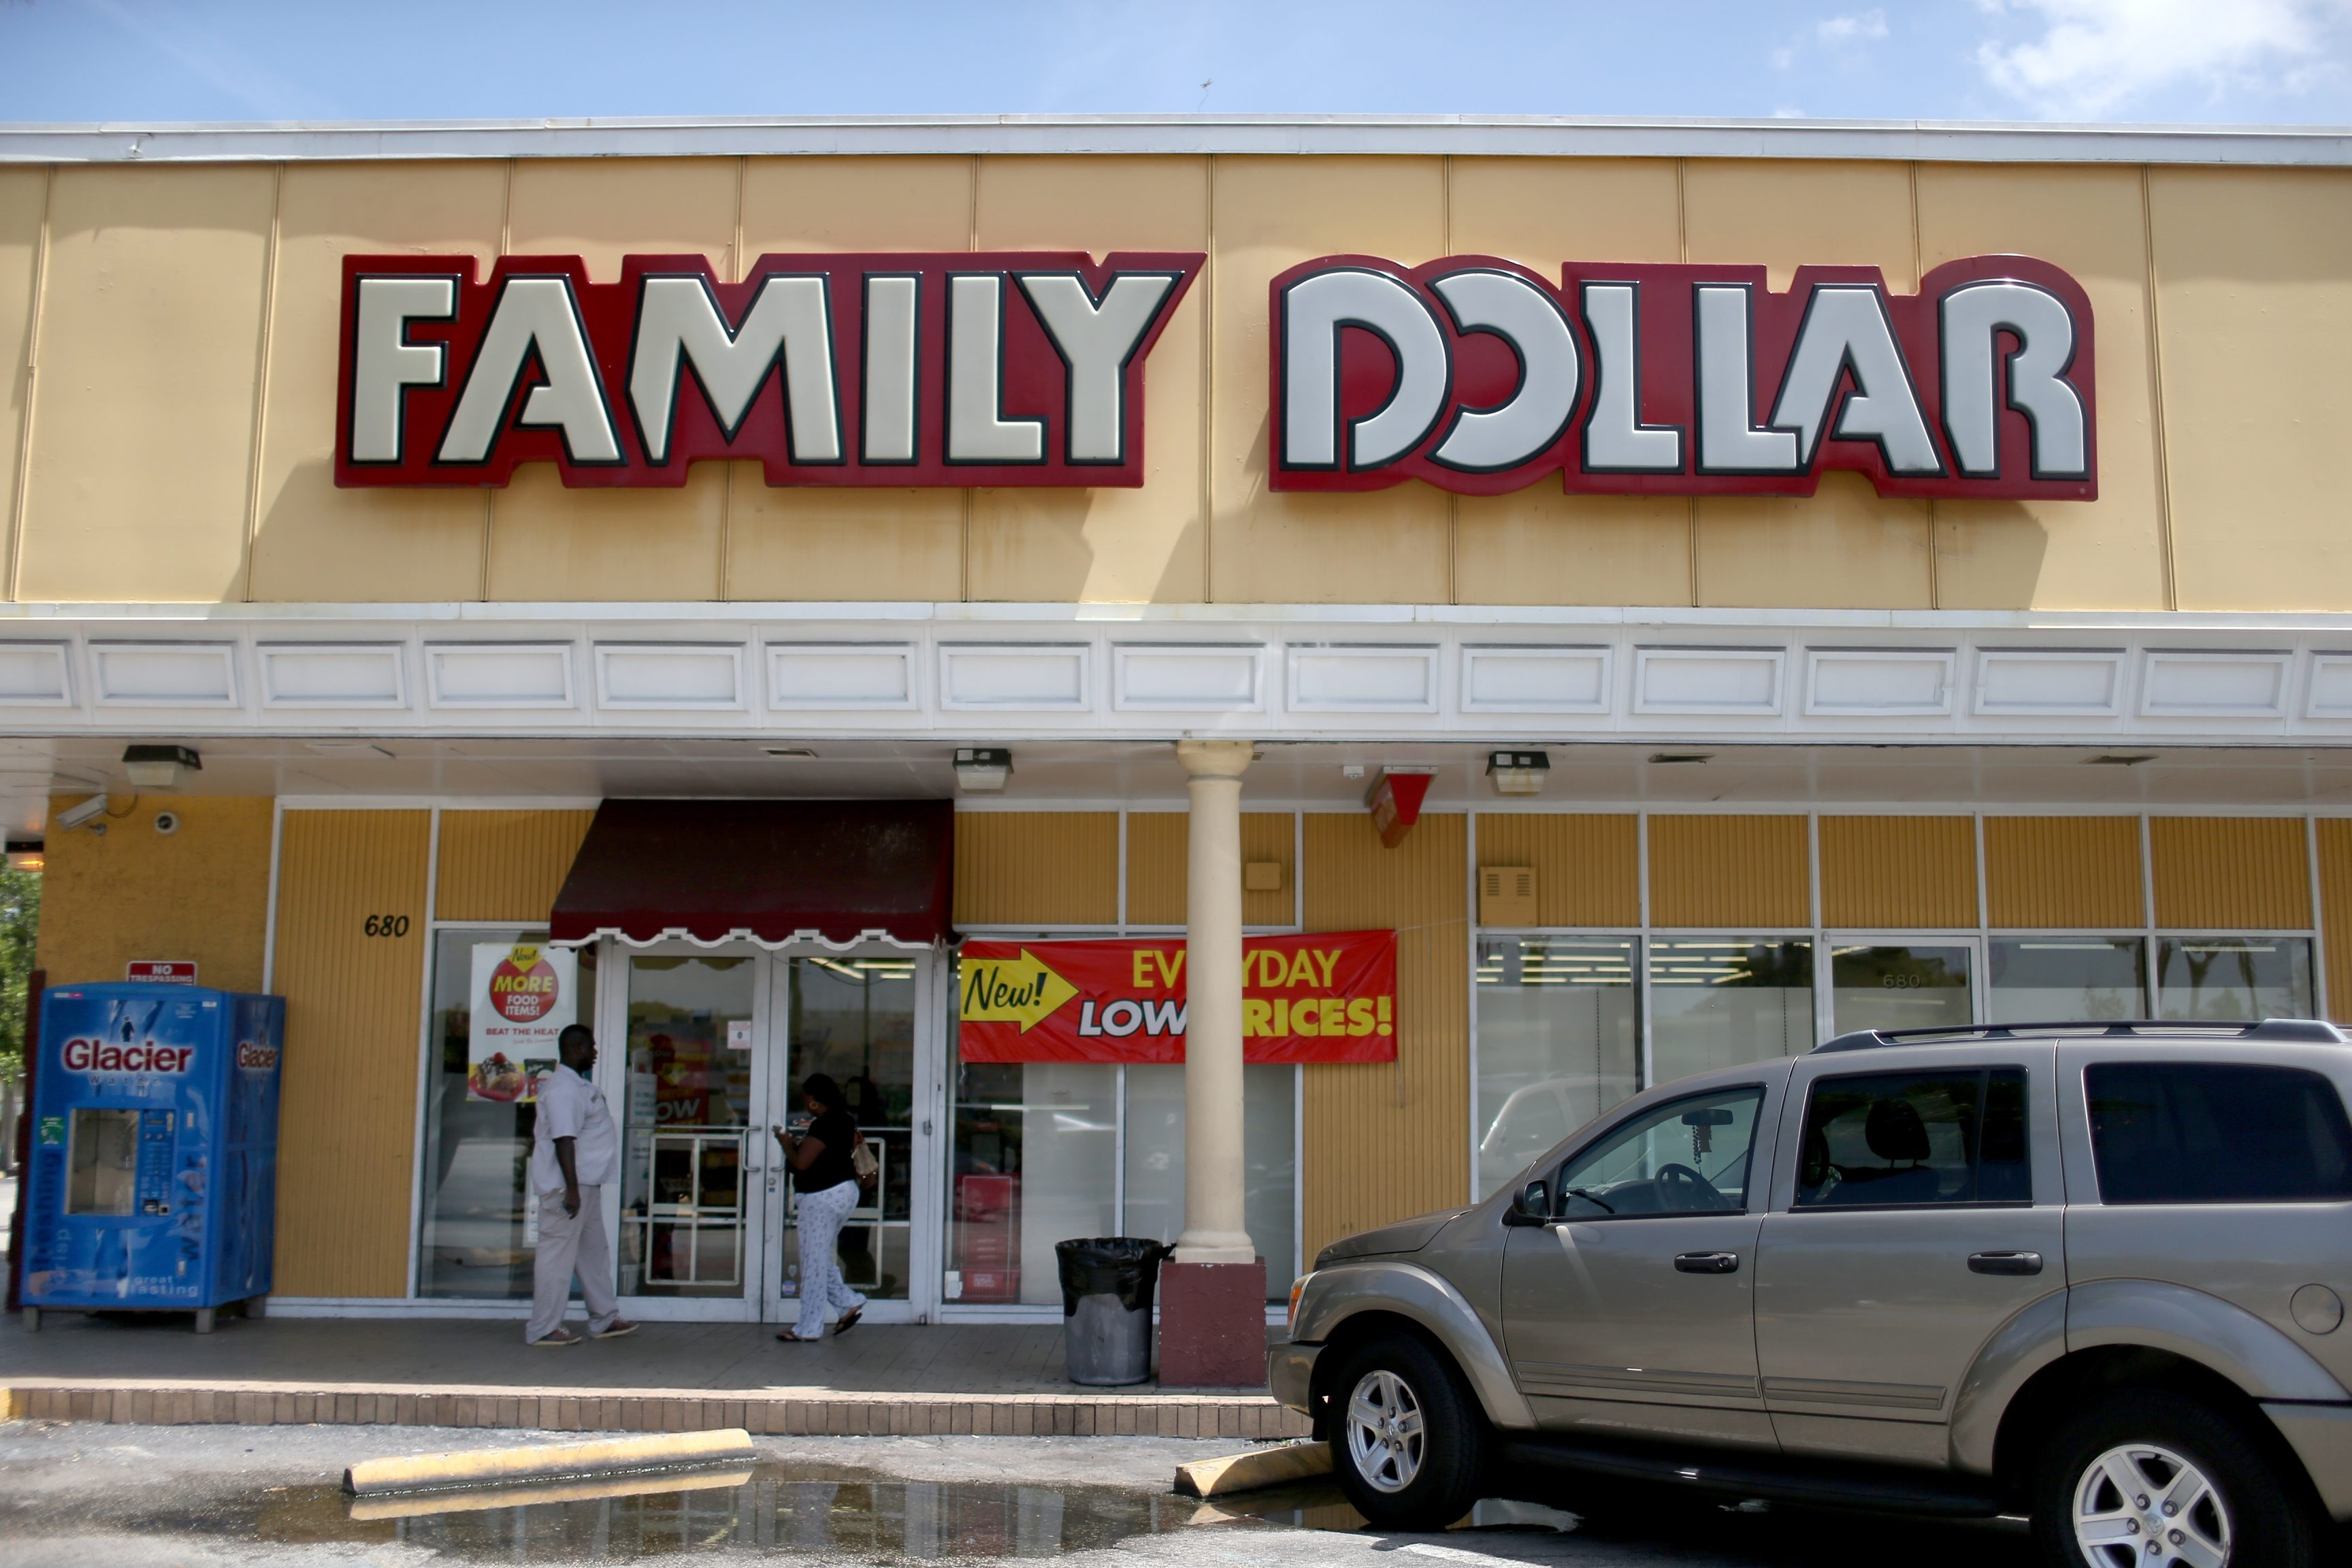 Family Dollar Stores spurned a higher takeover offer from Dollar General Corp. because it considered that move too risky and instead approved an offer from Dollar Tree Inc.